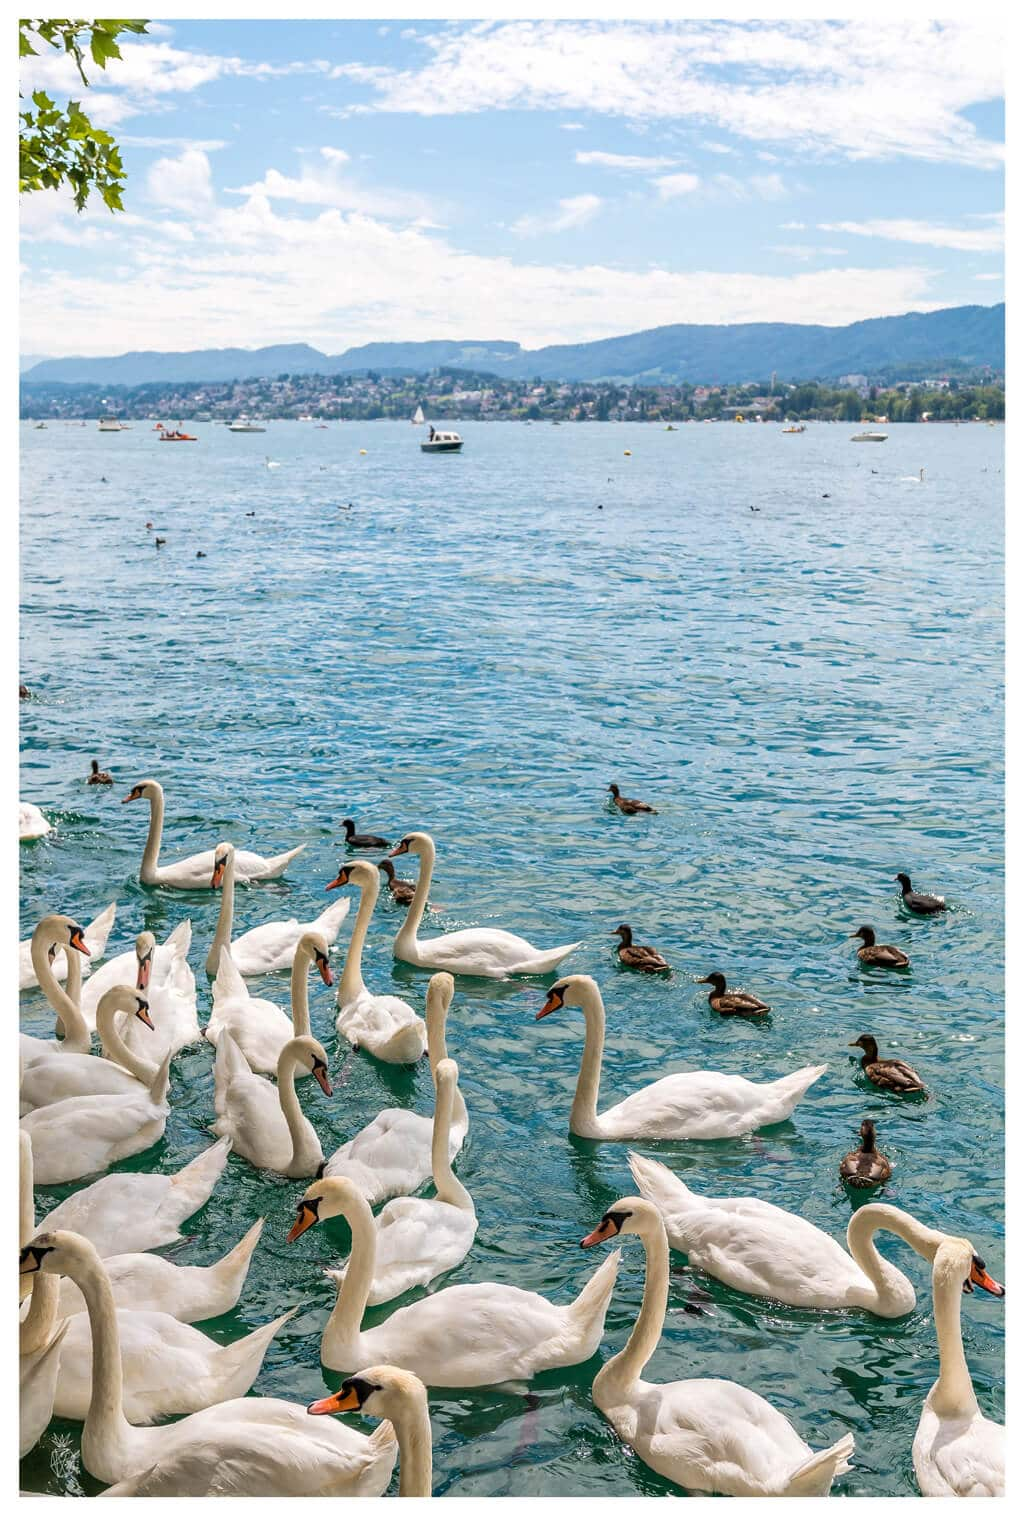 Travel Diaries : A Local Guide To Weekend in Zurich | Travel destinations